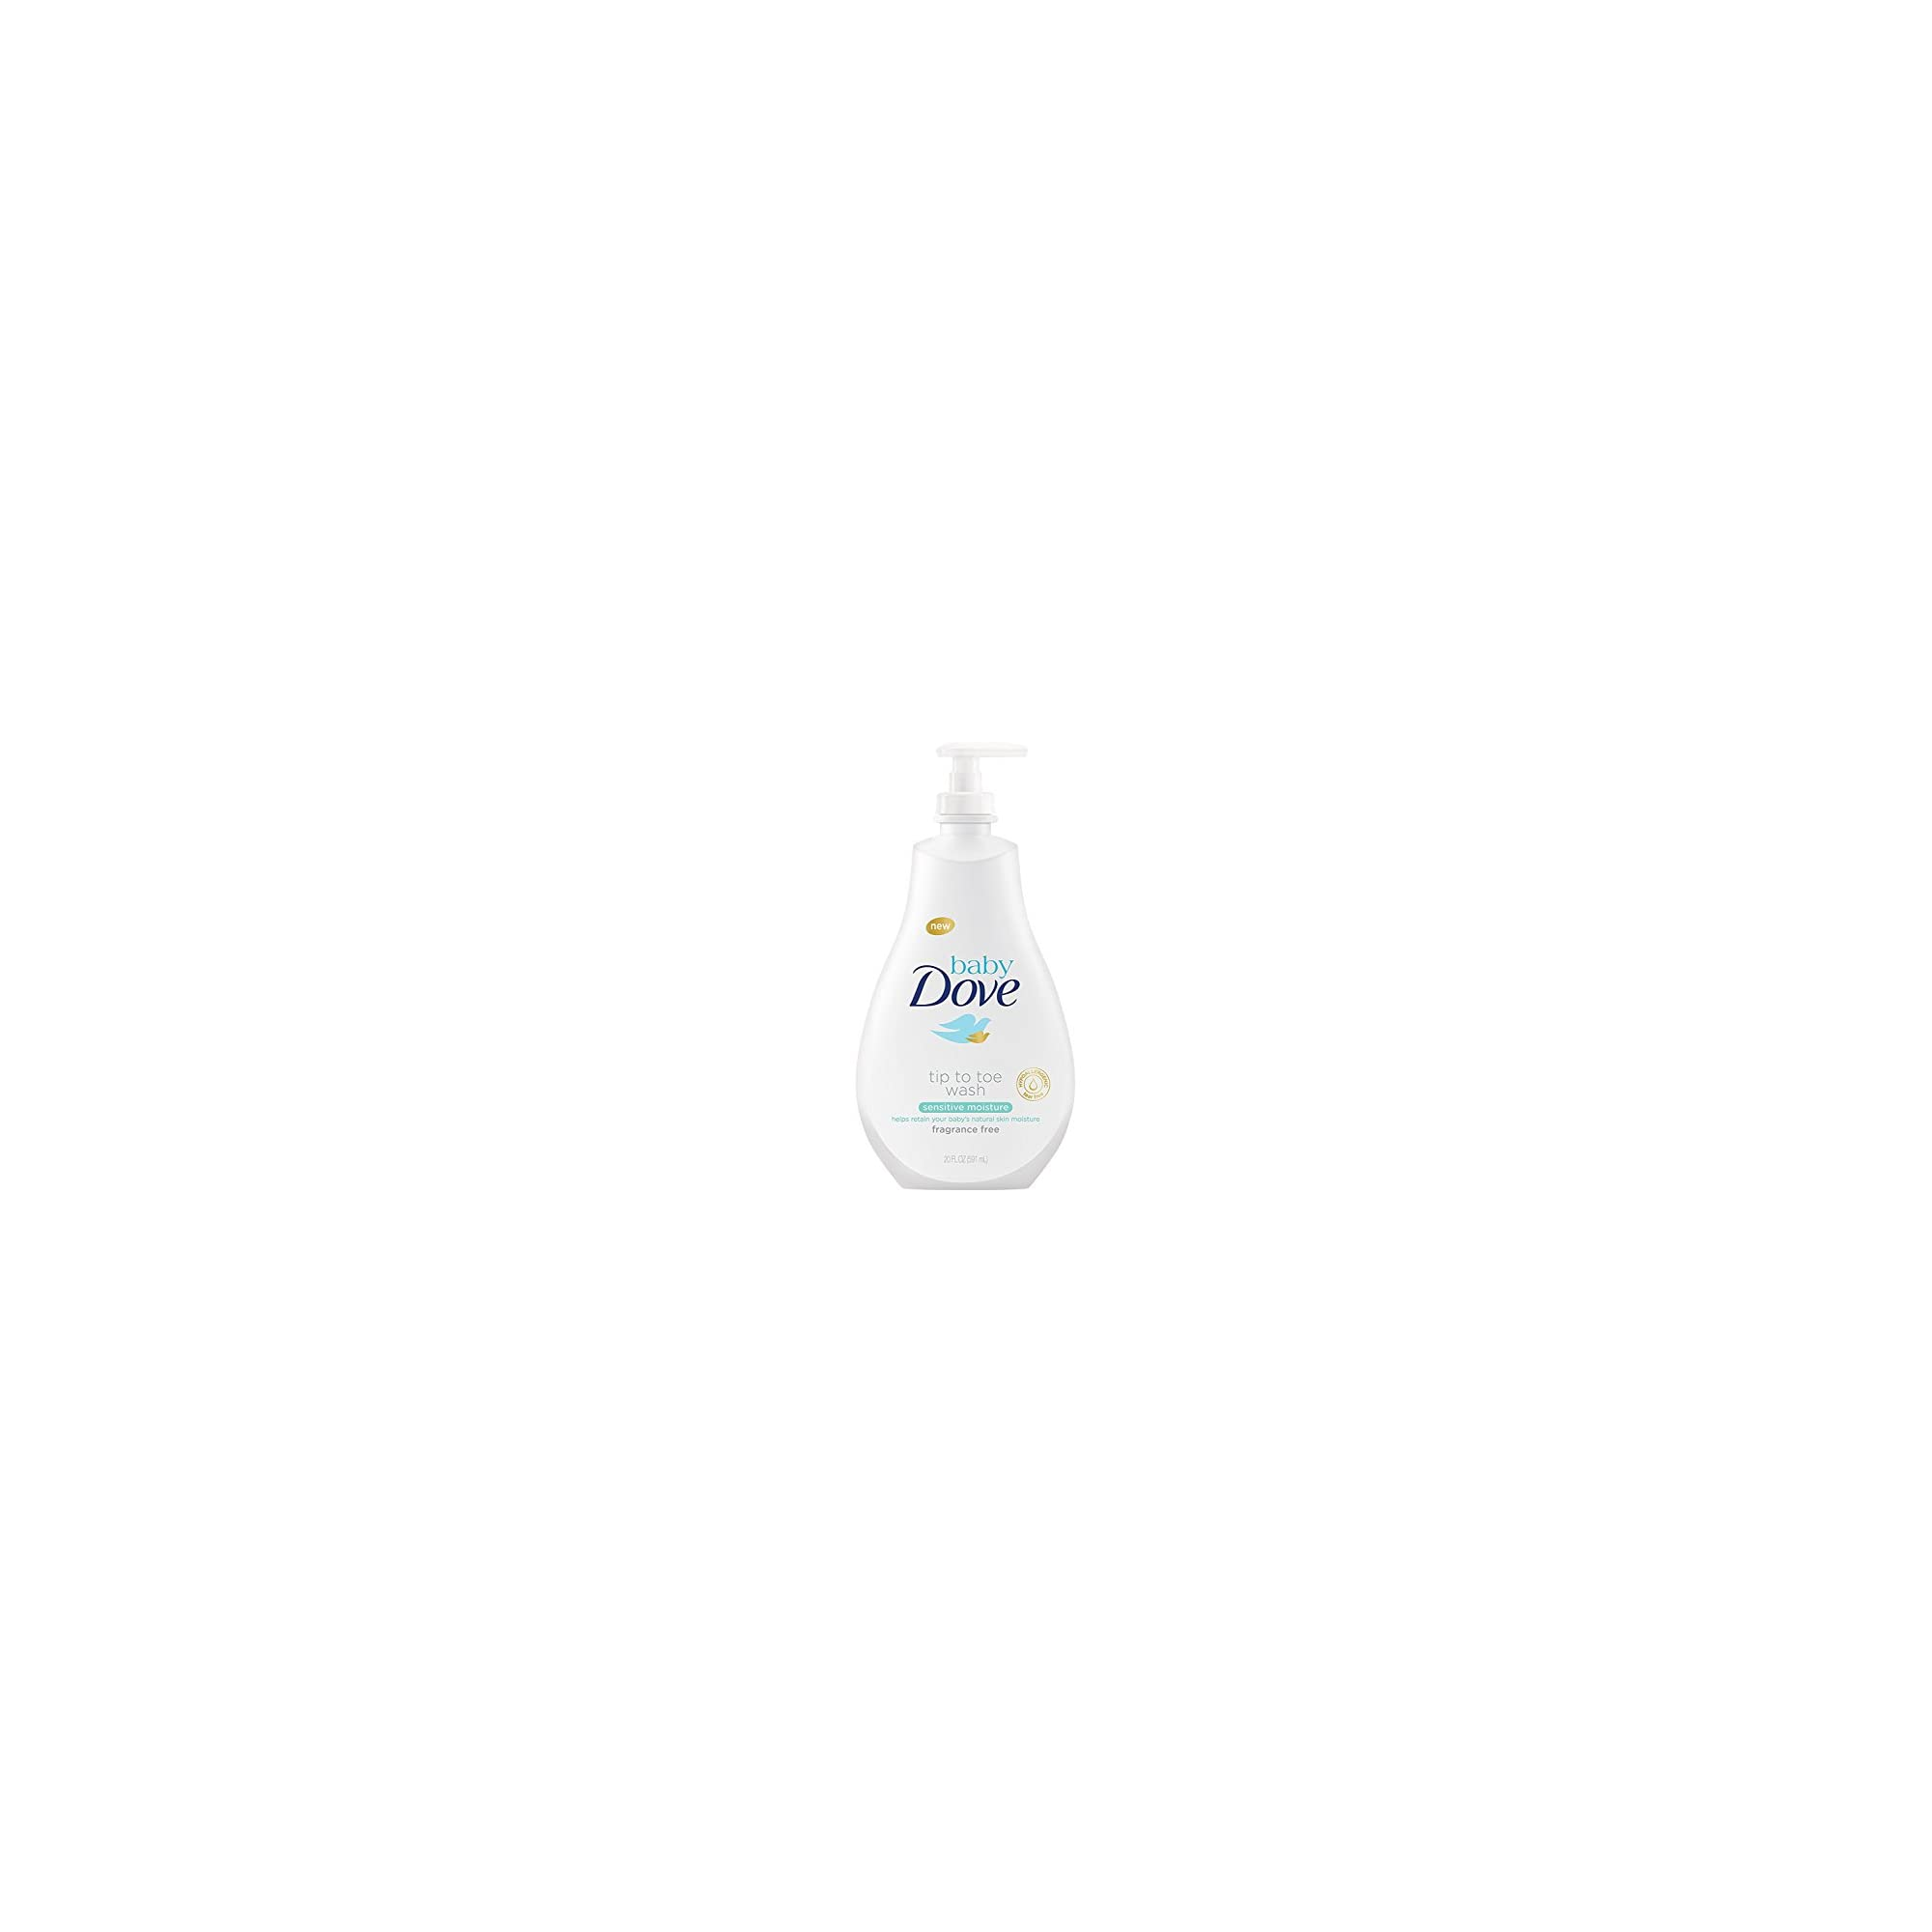 Baby Dove Tip to Toe Baby Wash Sensitive Moisture 20 oz for Sensitive Skin Washes Away Bacteria, Fragrance-Free Baby Wash